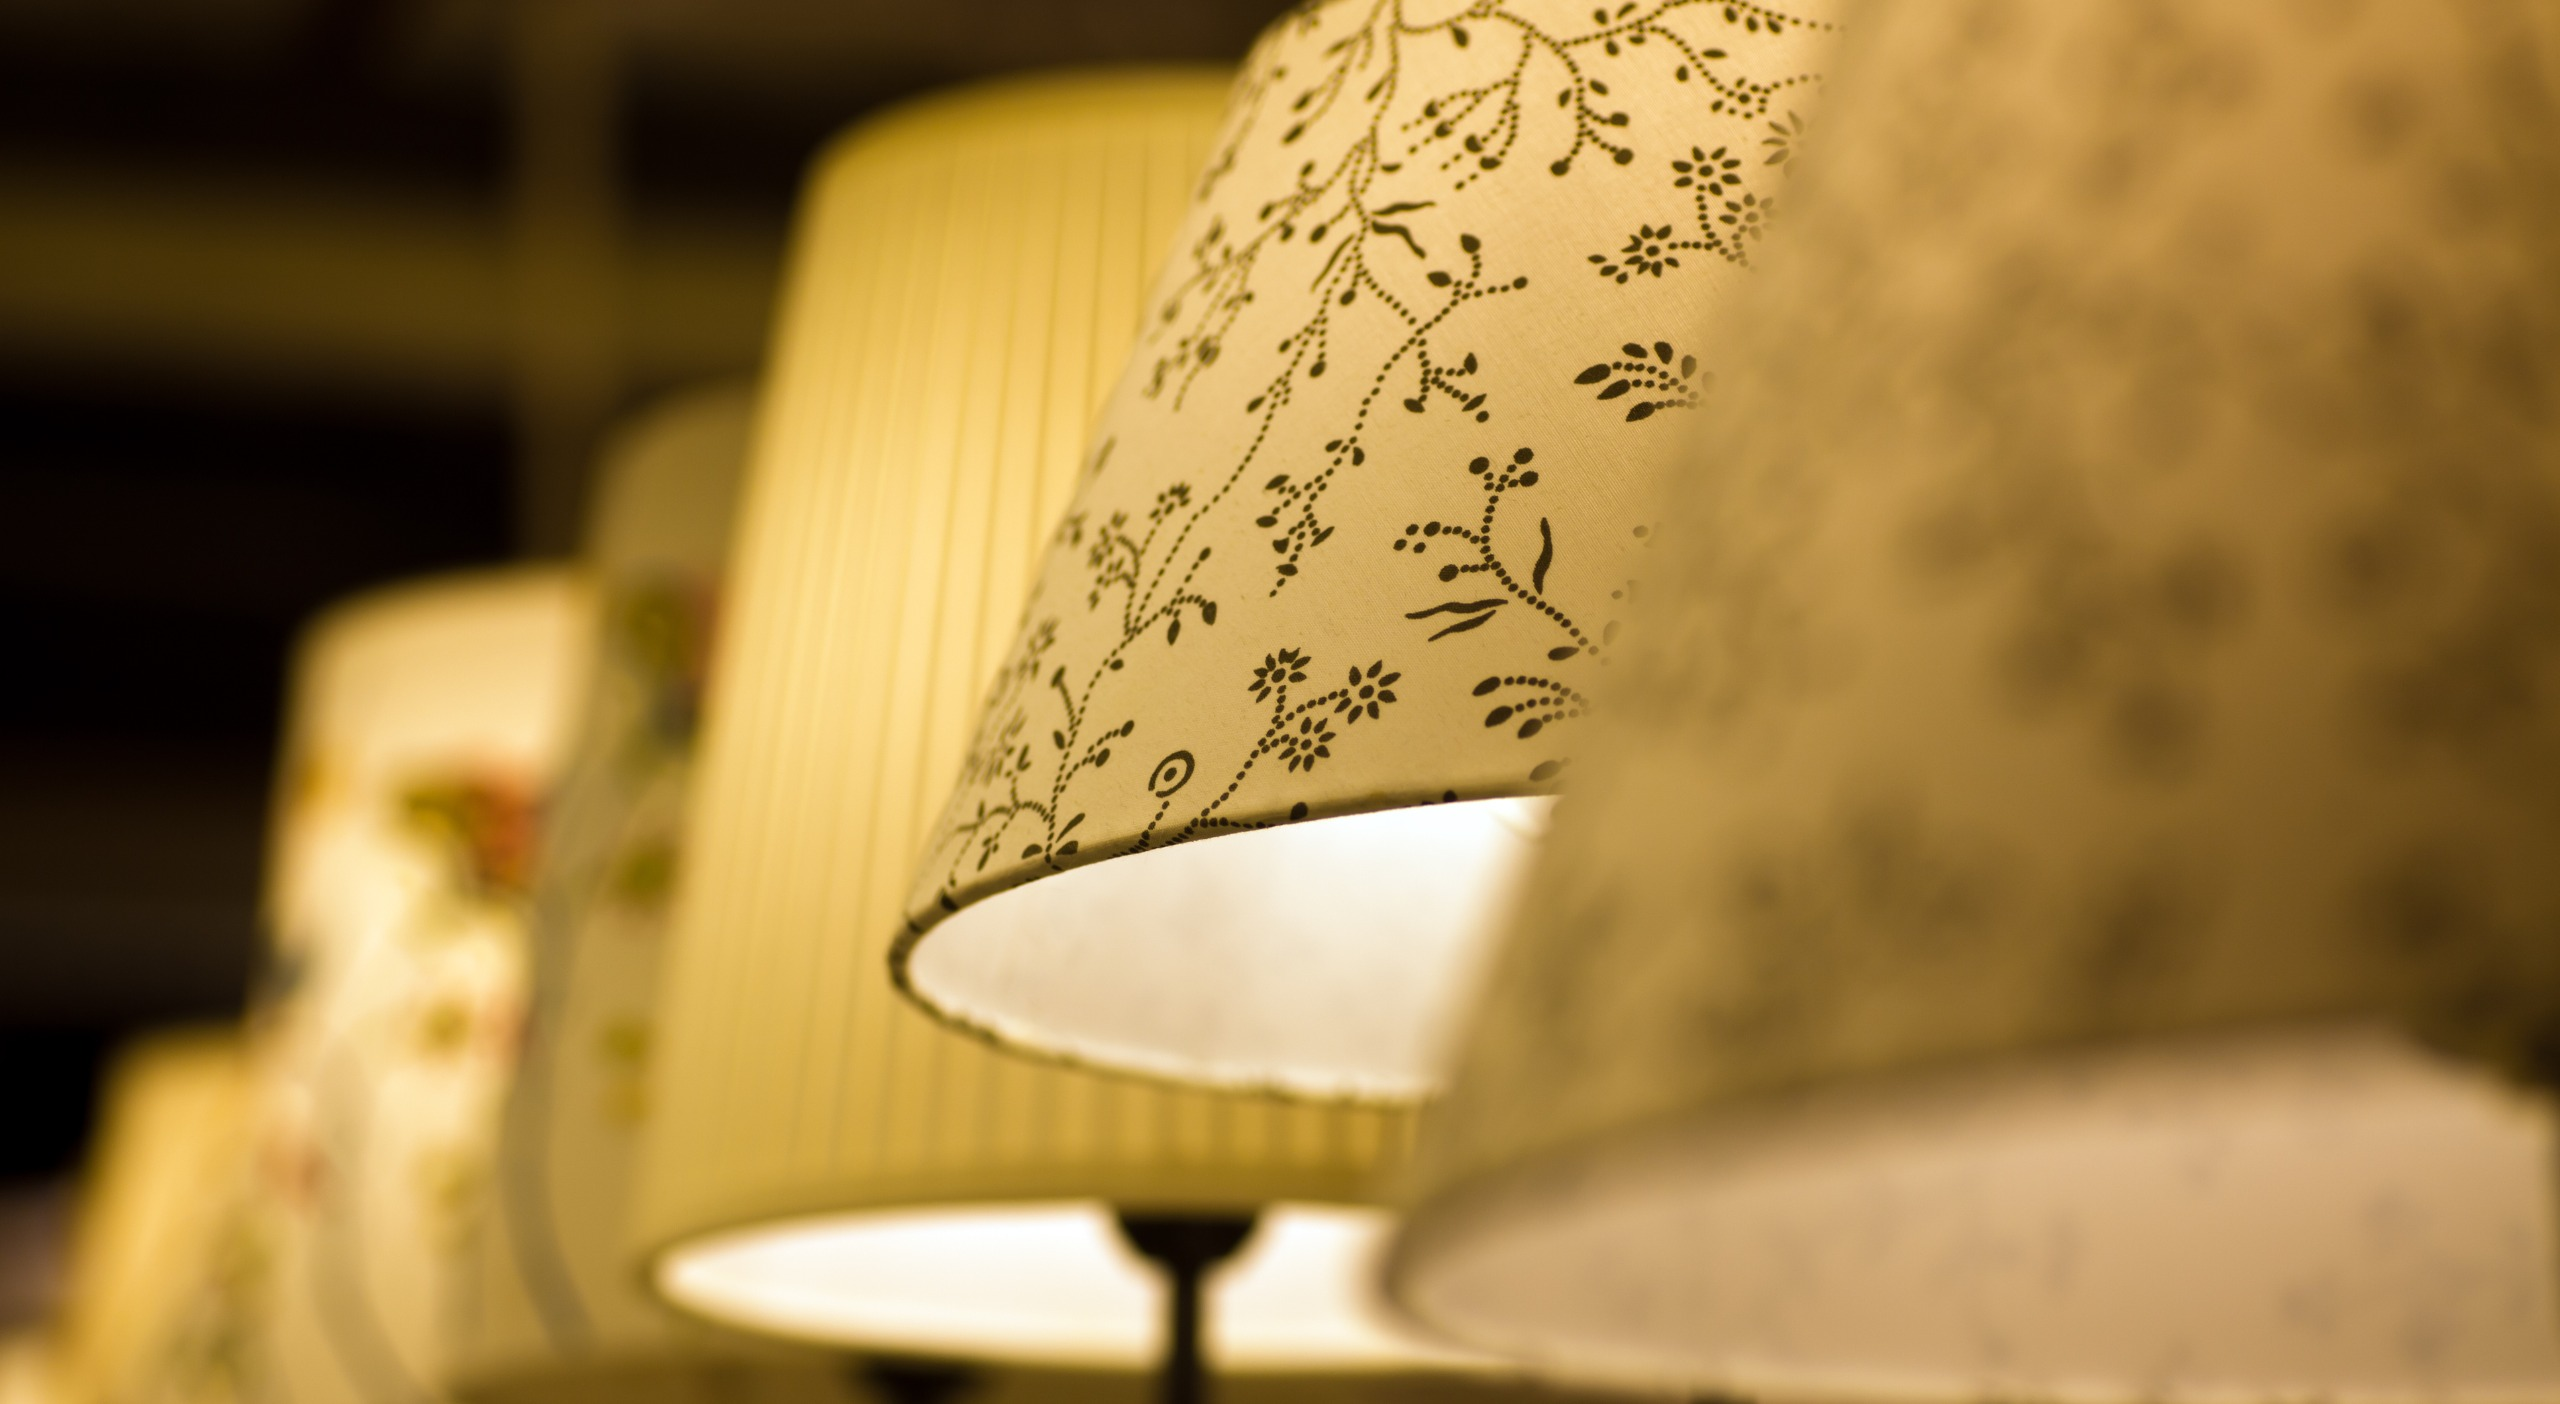 How To Wash Lamp Shades: A Detailed Tutorial